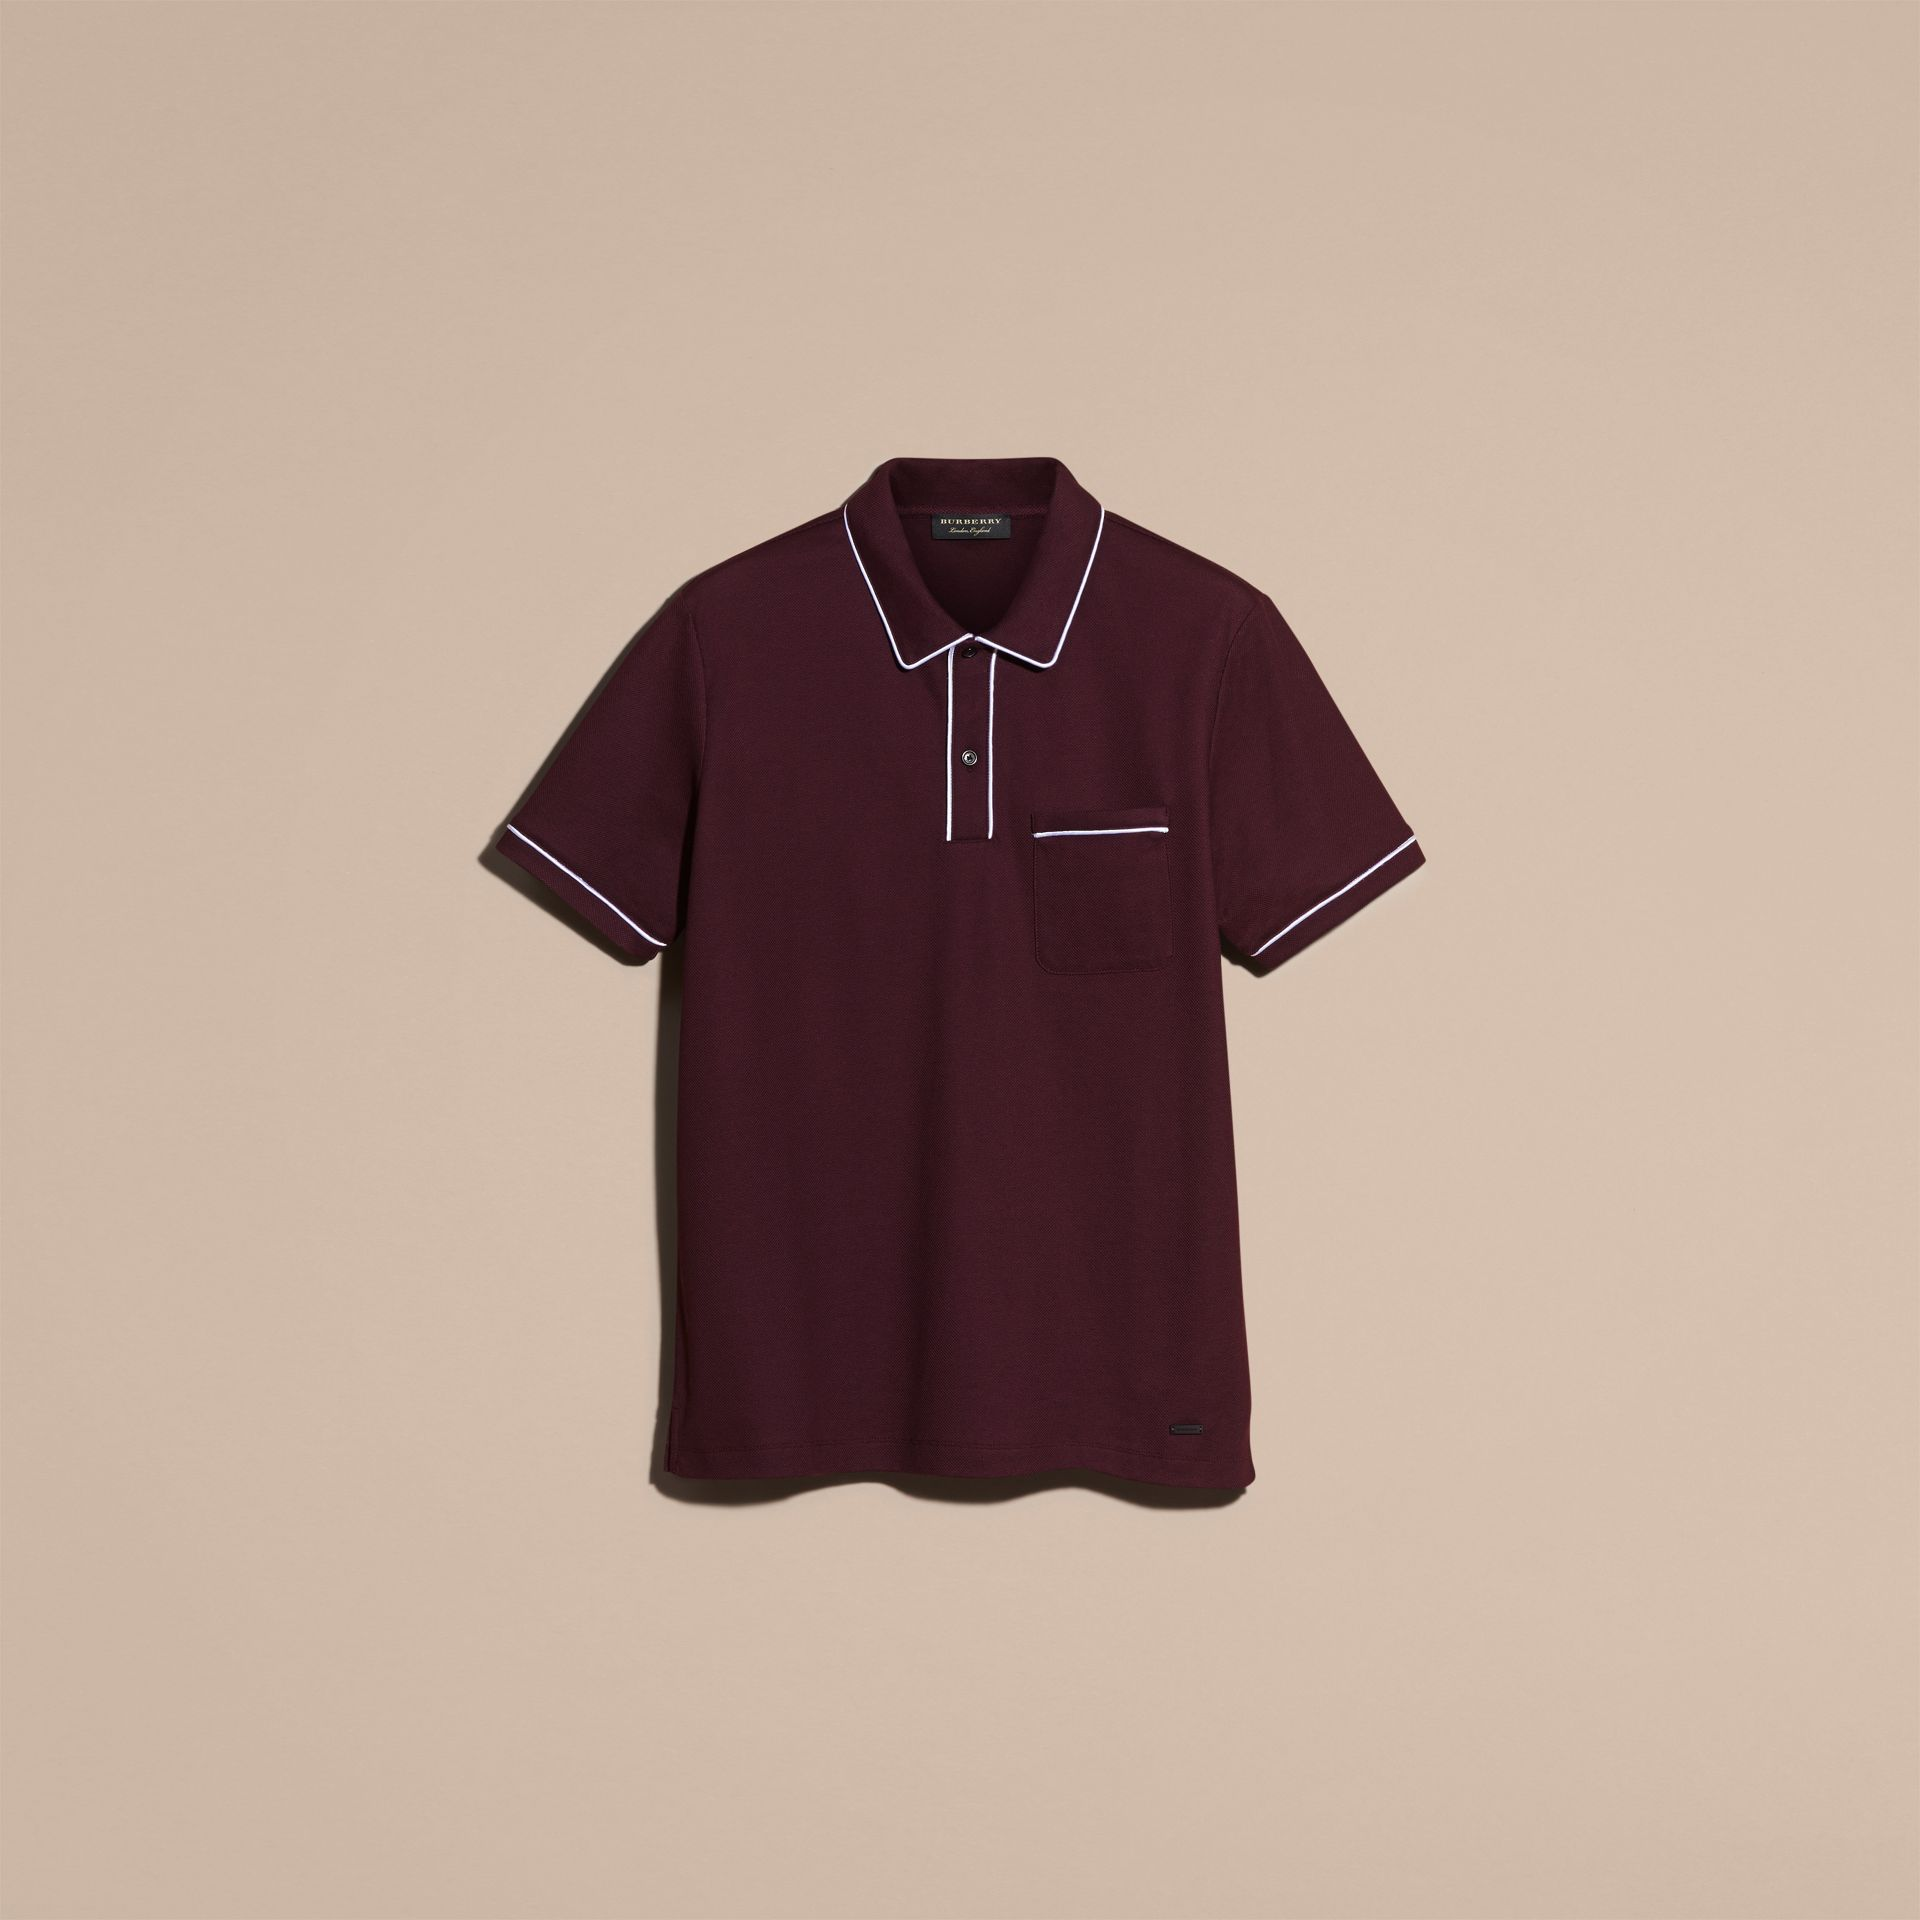 Burgundy Piped Cotton Piqué Polo Shirt Burgundy - gallery image 4